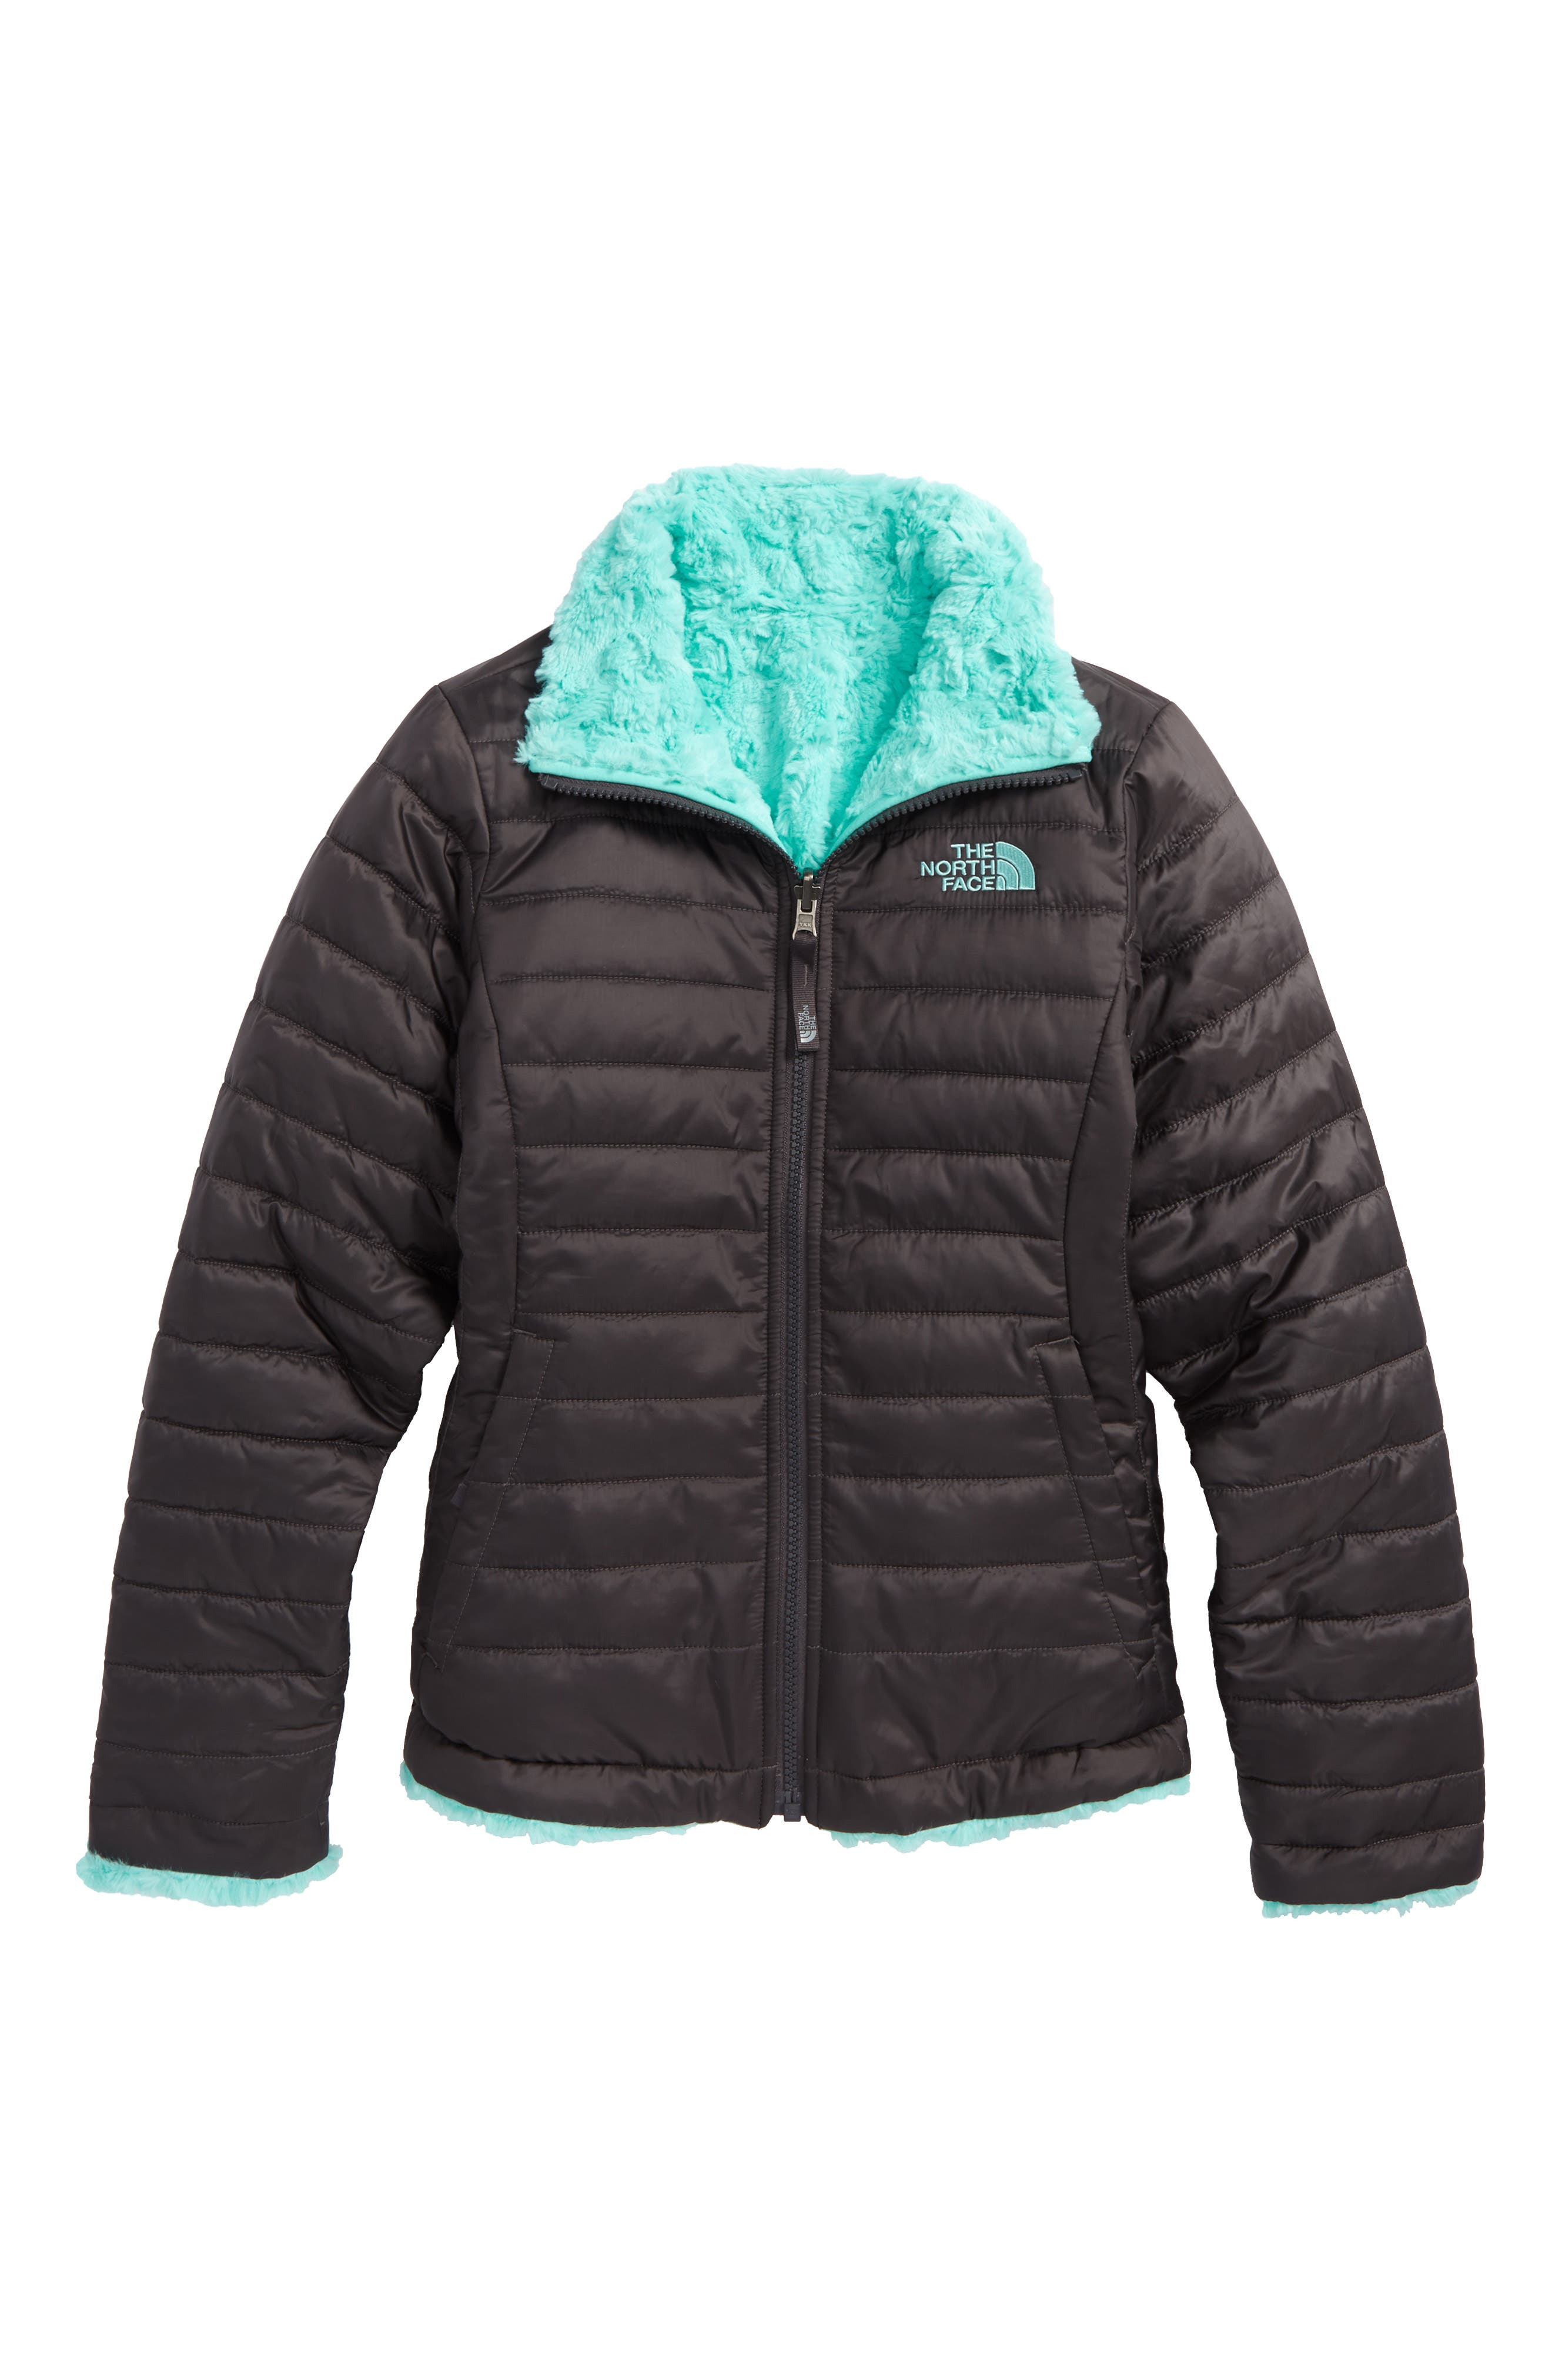 THE NORTH FACE, Mossbud Swirl Reversible Water Repellent Jacket, Main thumbnail 1, color, 021